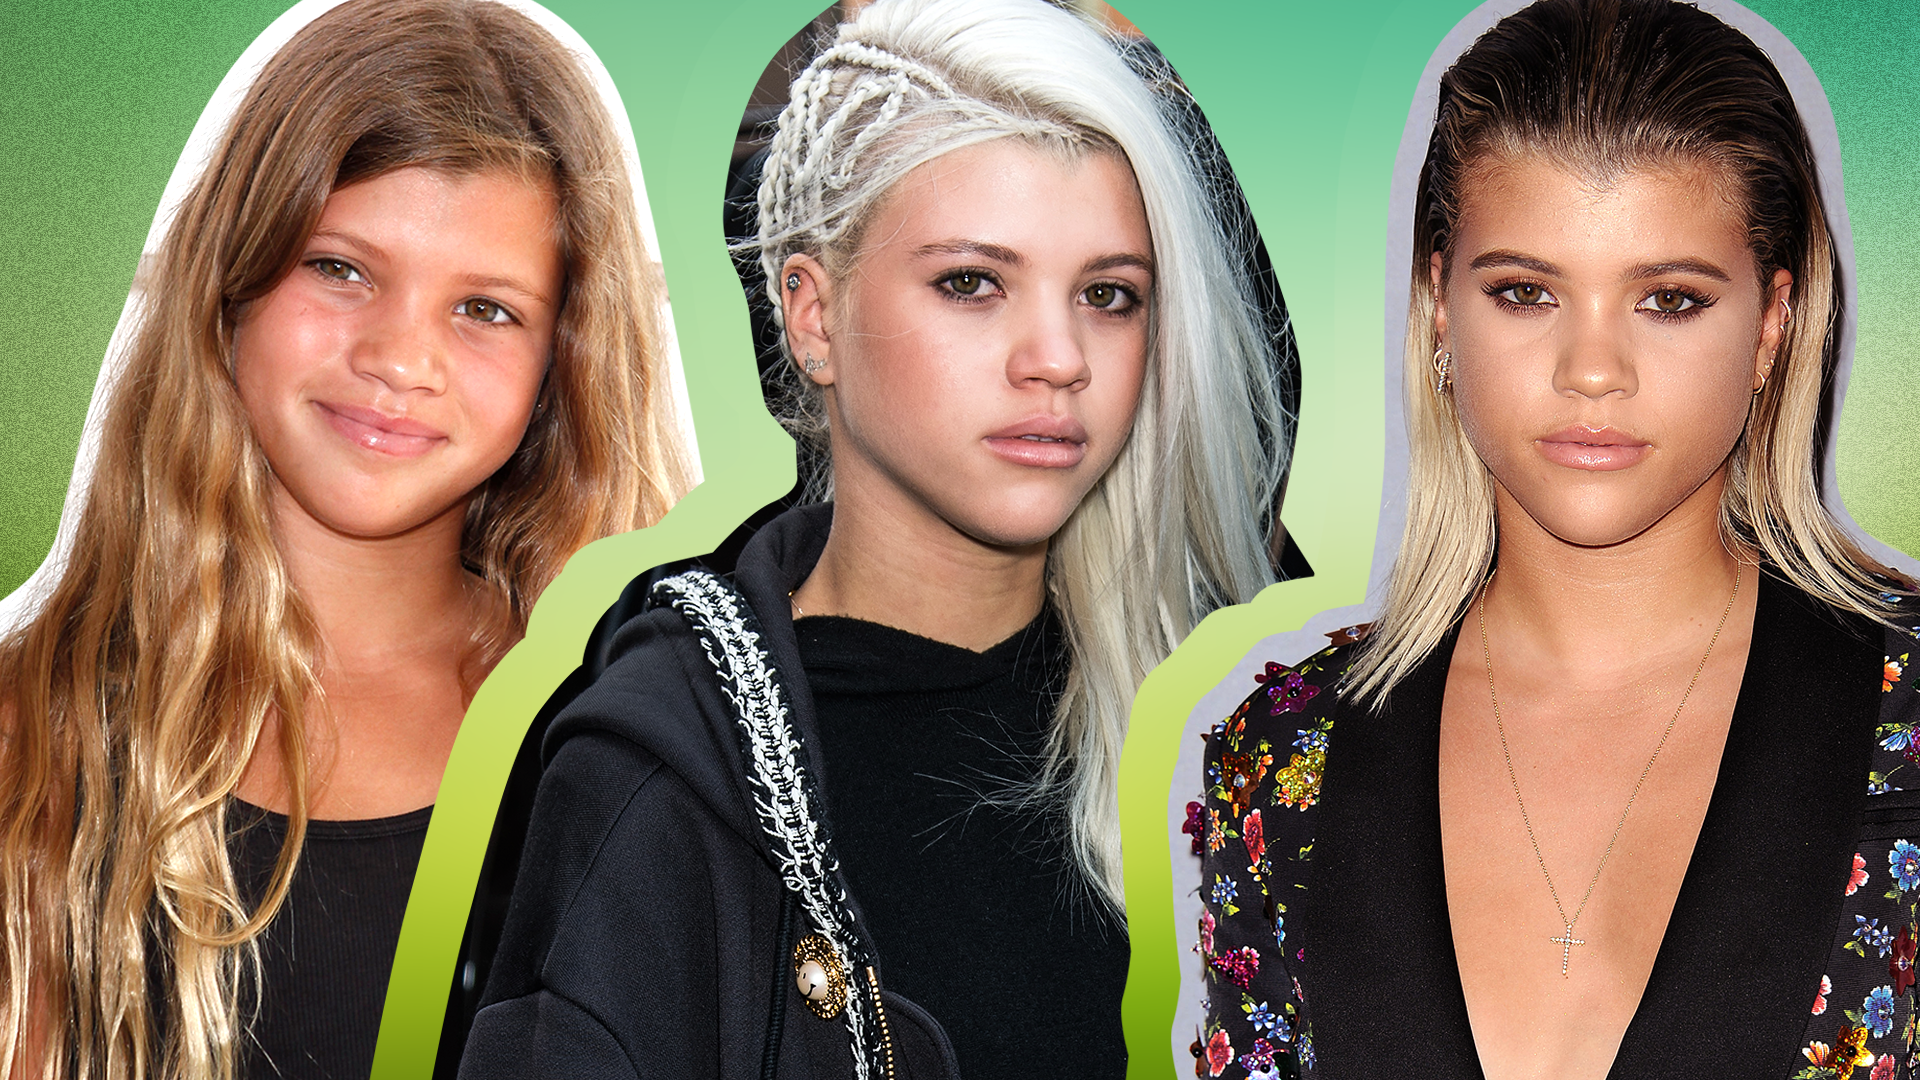 Sofia Richie's Beauty Evolution Since 2007 Is Seriously Mind-Blowing